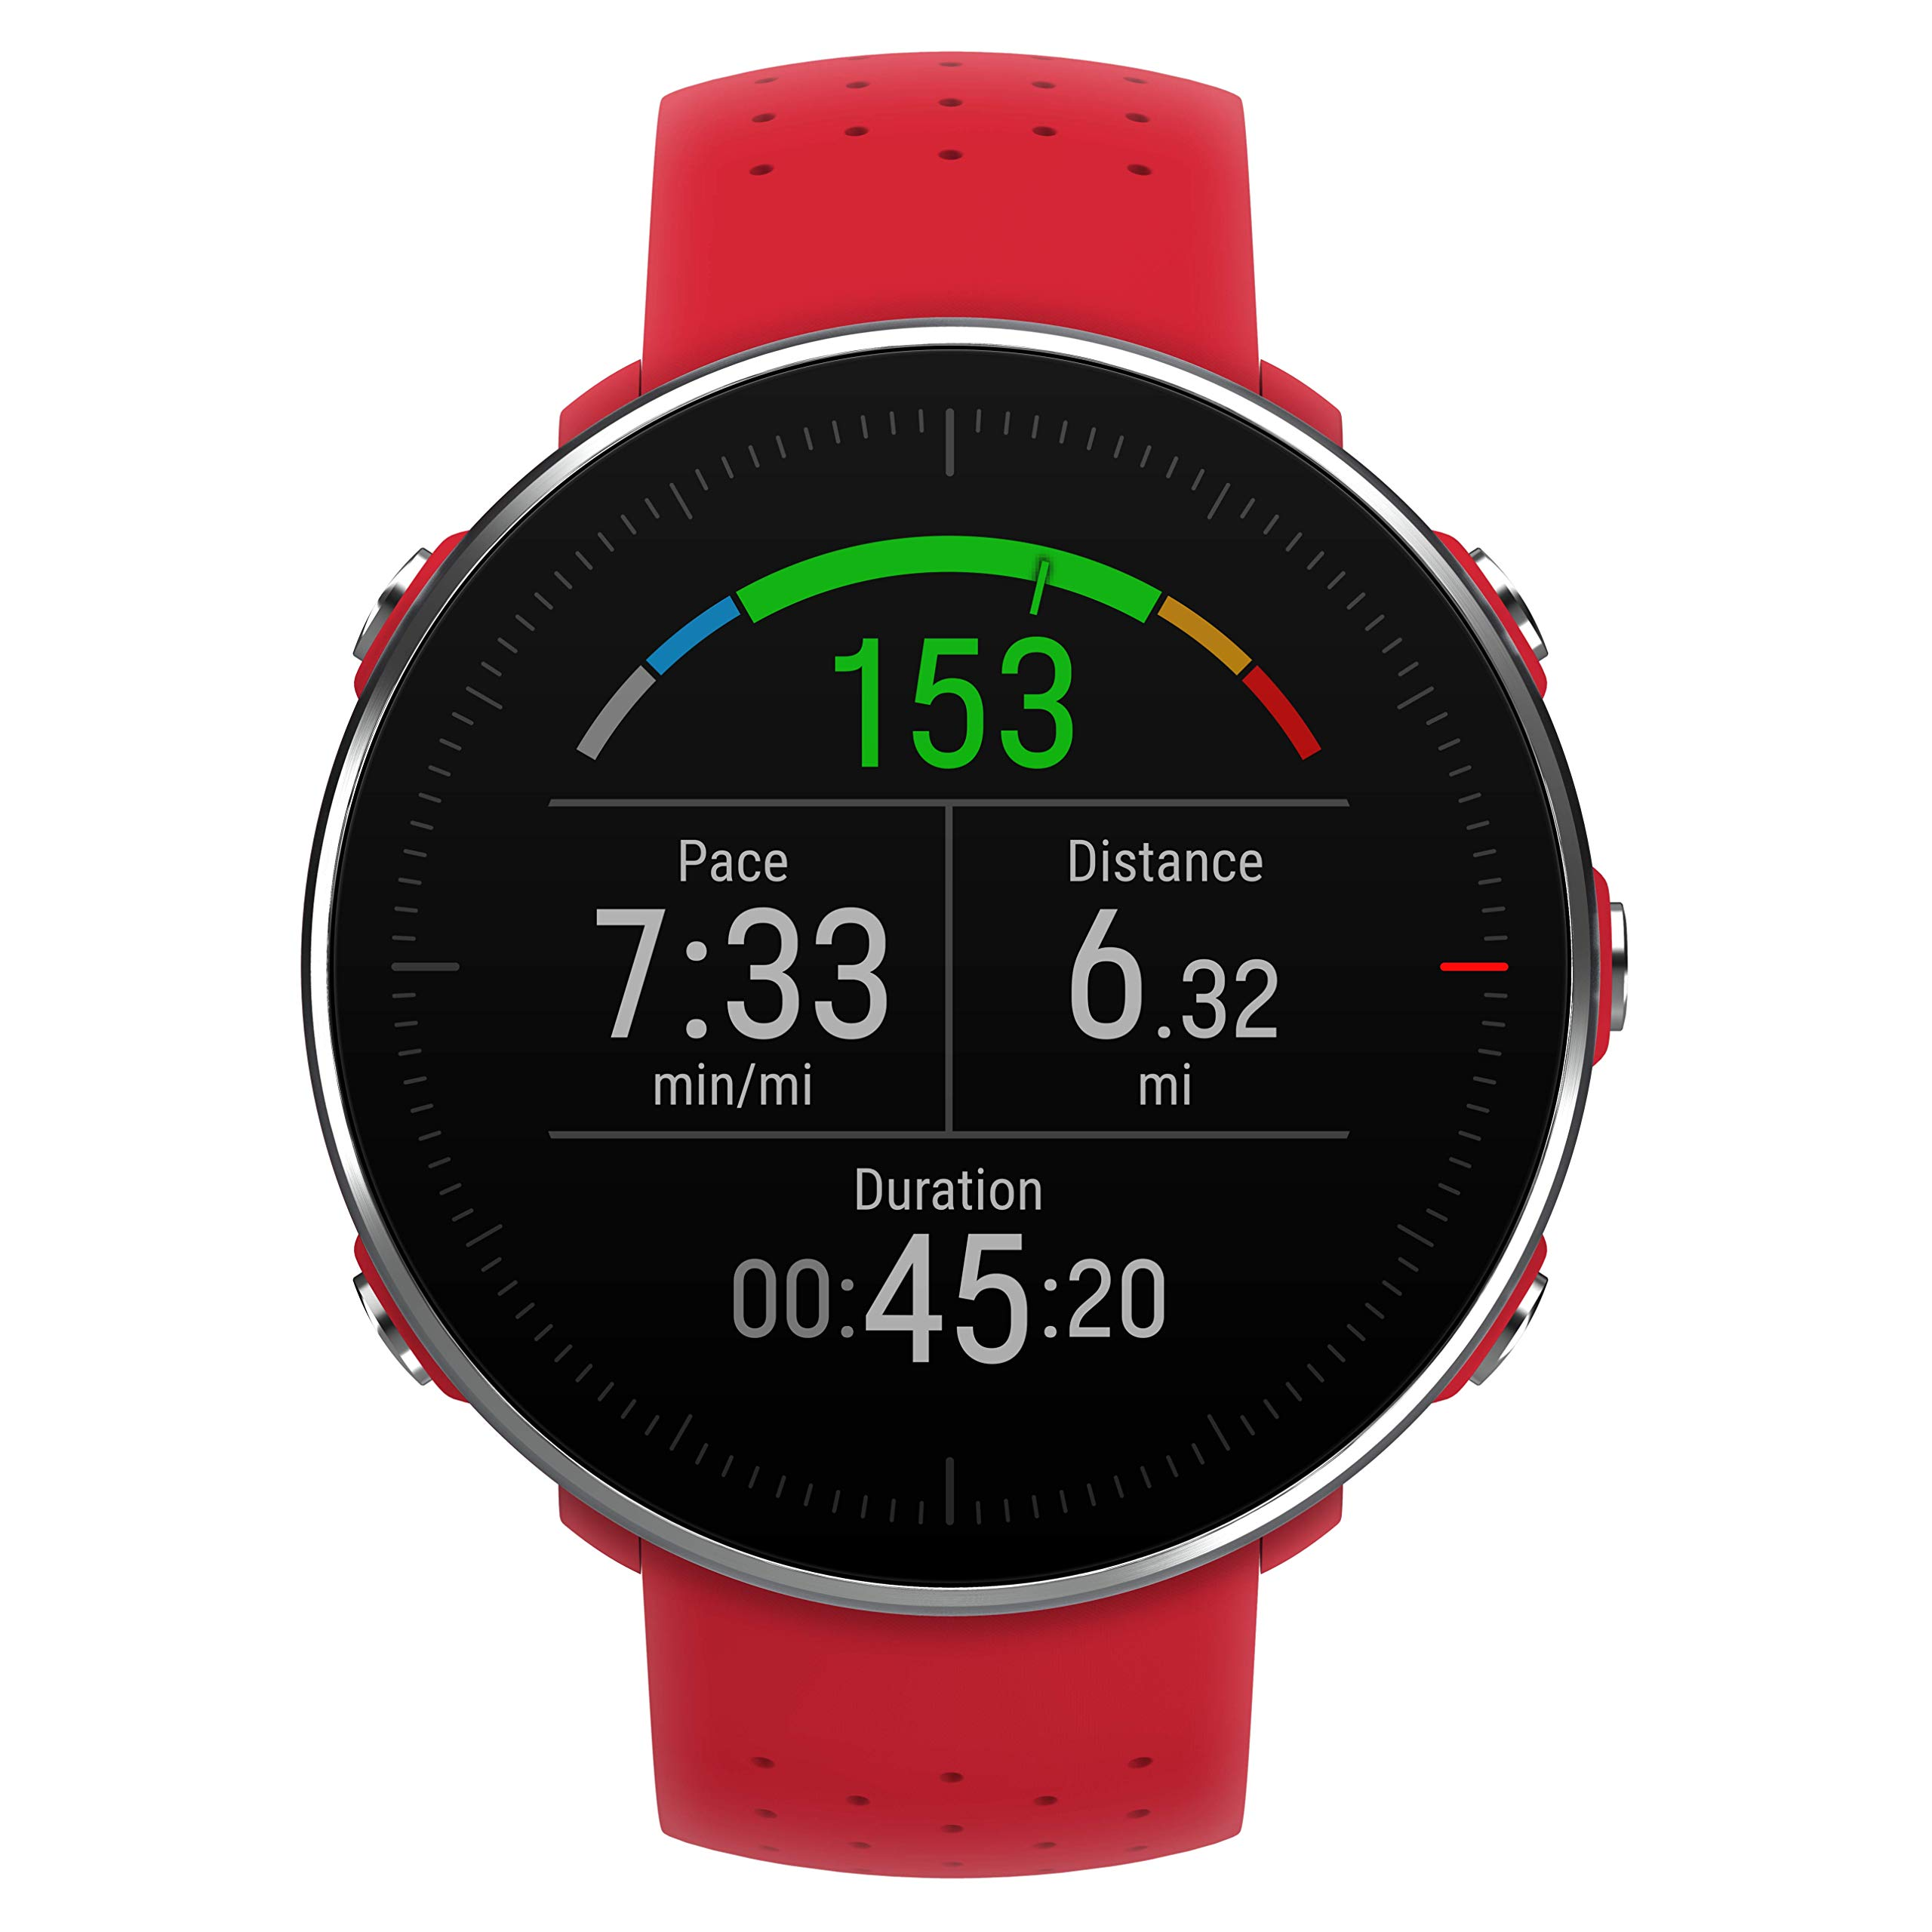 POLAR VANTAGE M –Advanced Running & Multisport Watch with GPS and Wrist-based Heart Rate (Lightweight Design & Latest Technology, Red, M-L